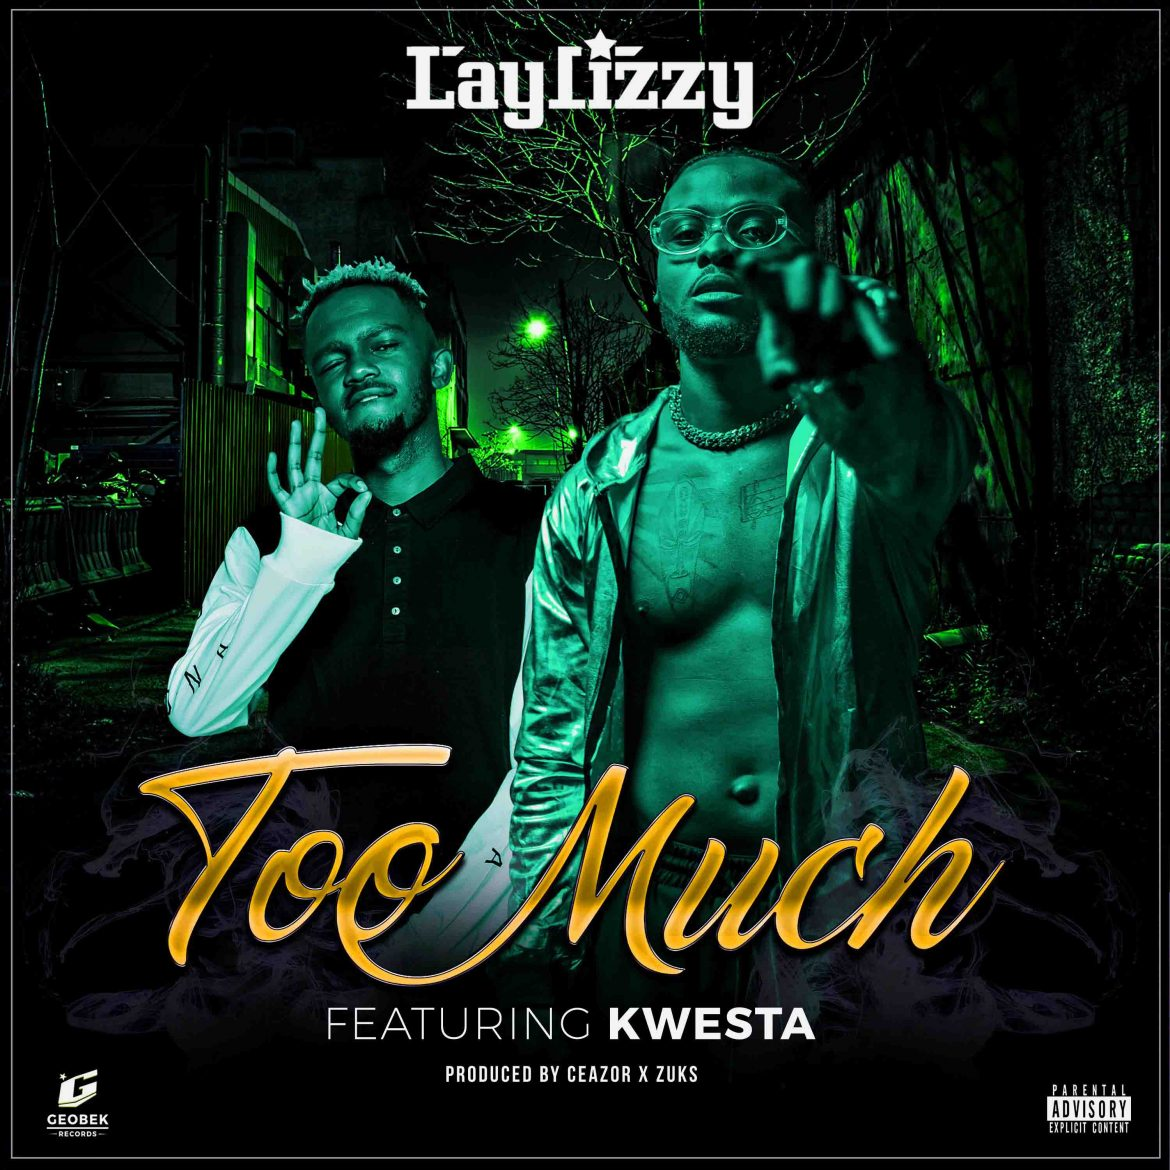 TooMuchLaylizzy